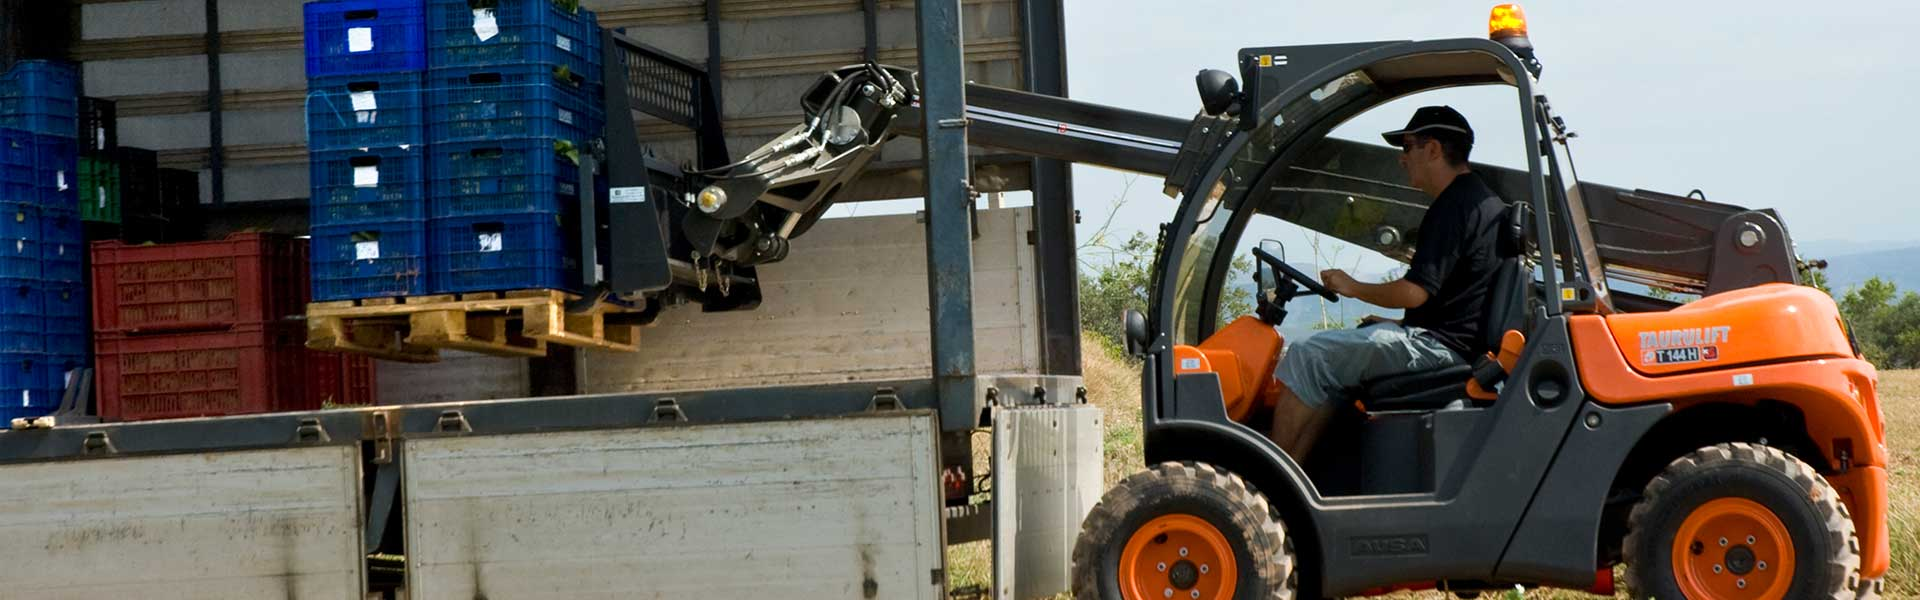 Where to rent Forklifts in Oahu